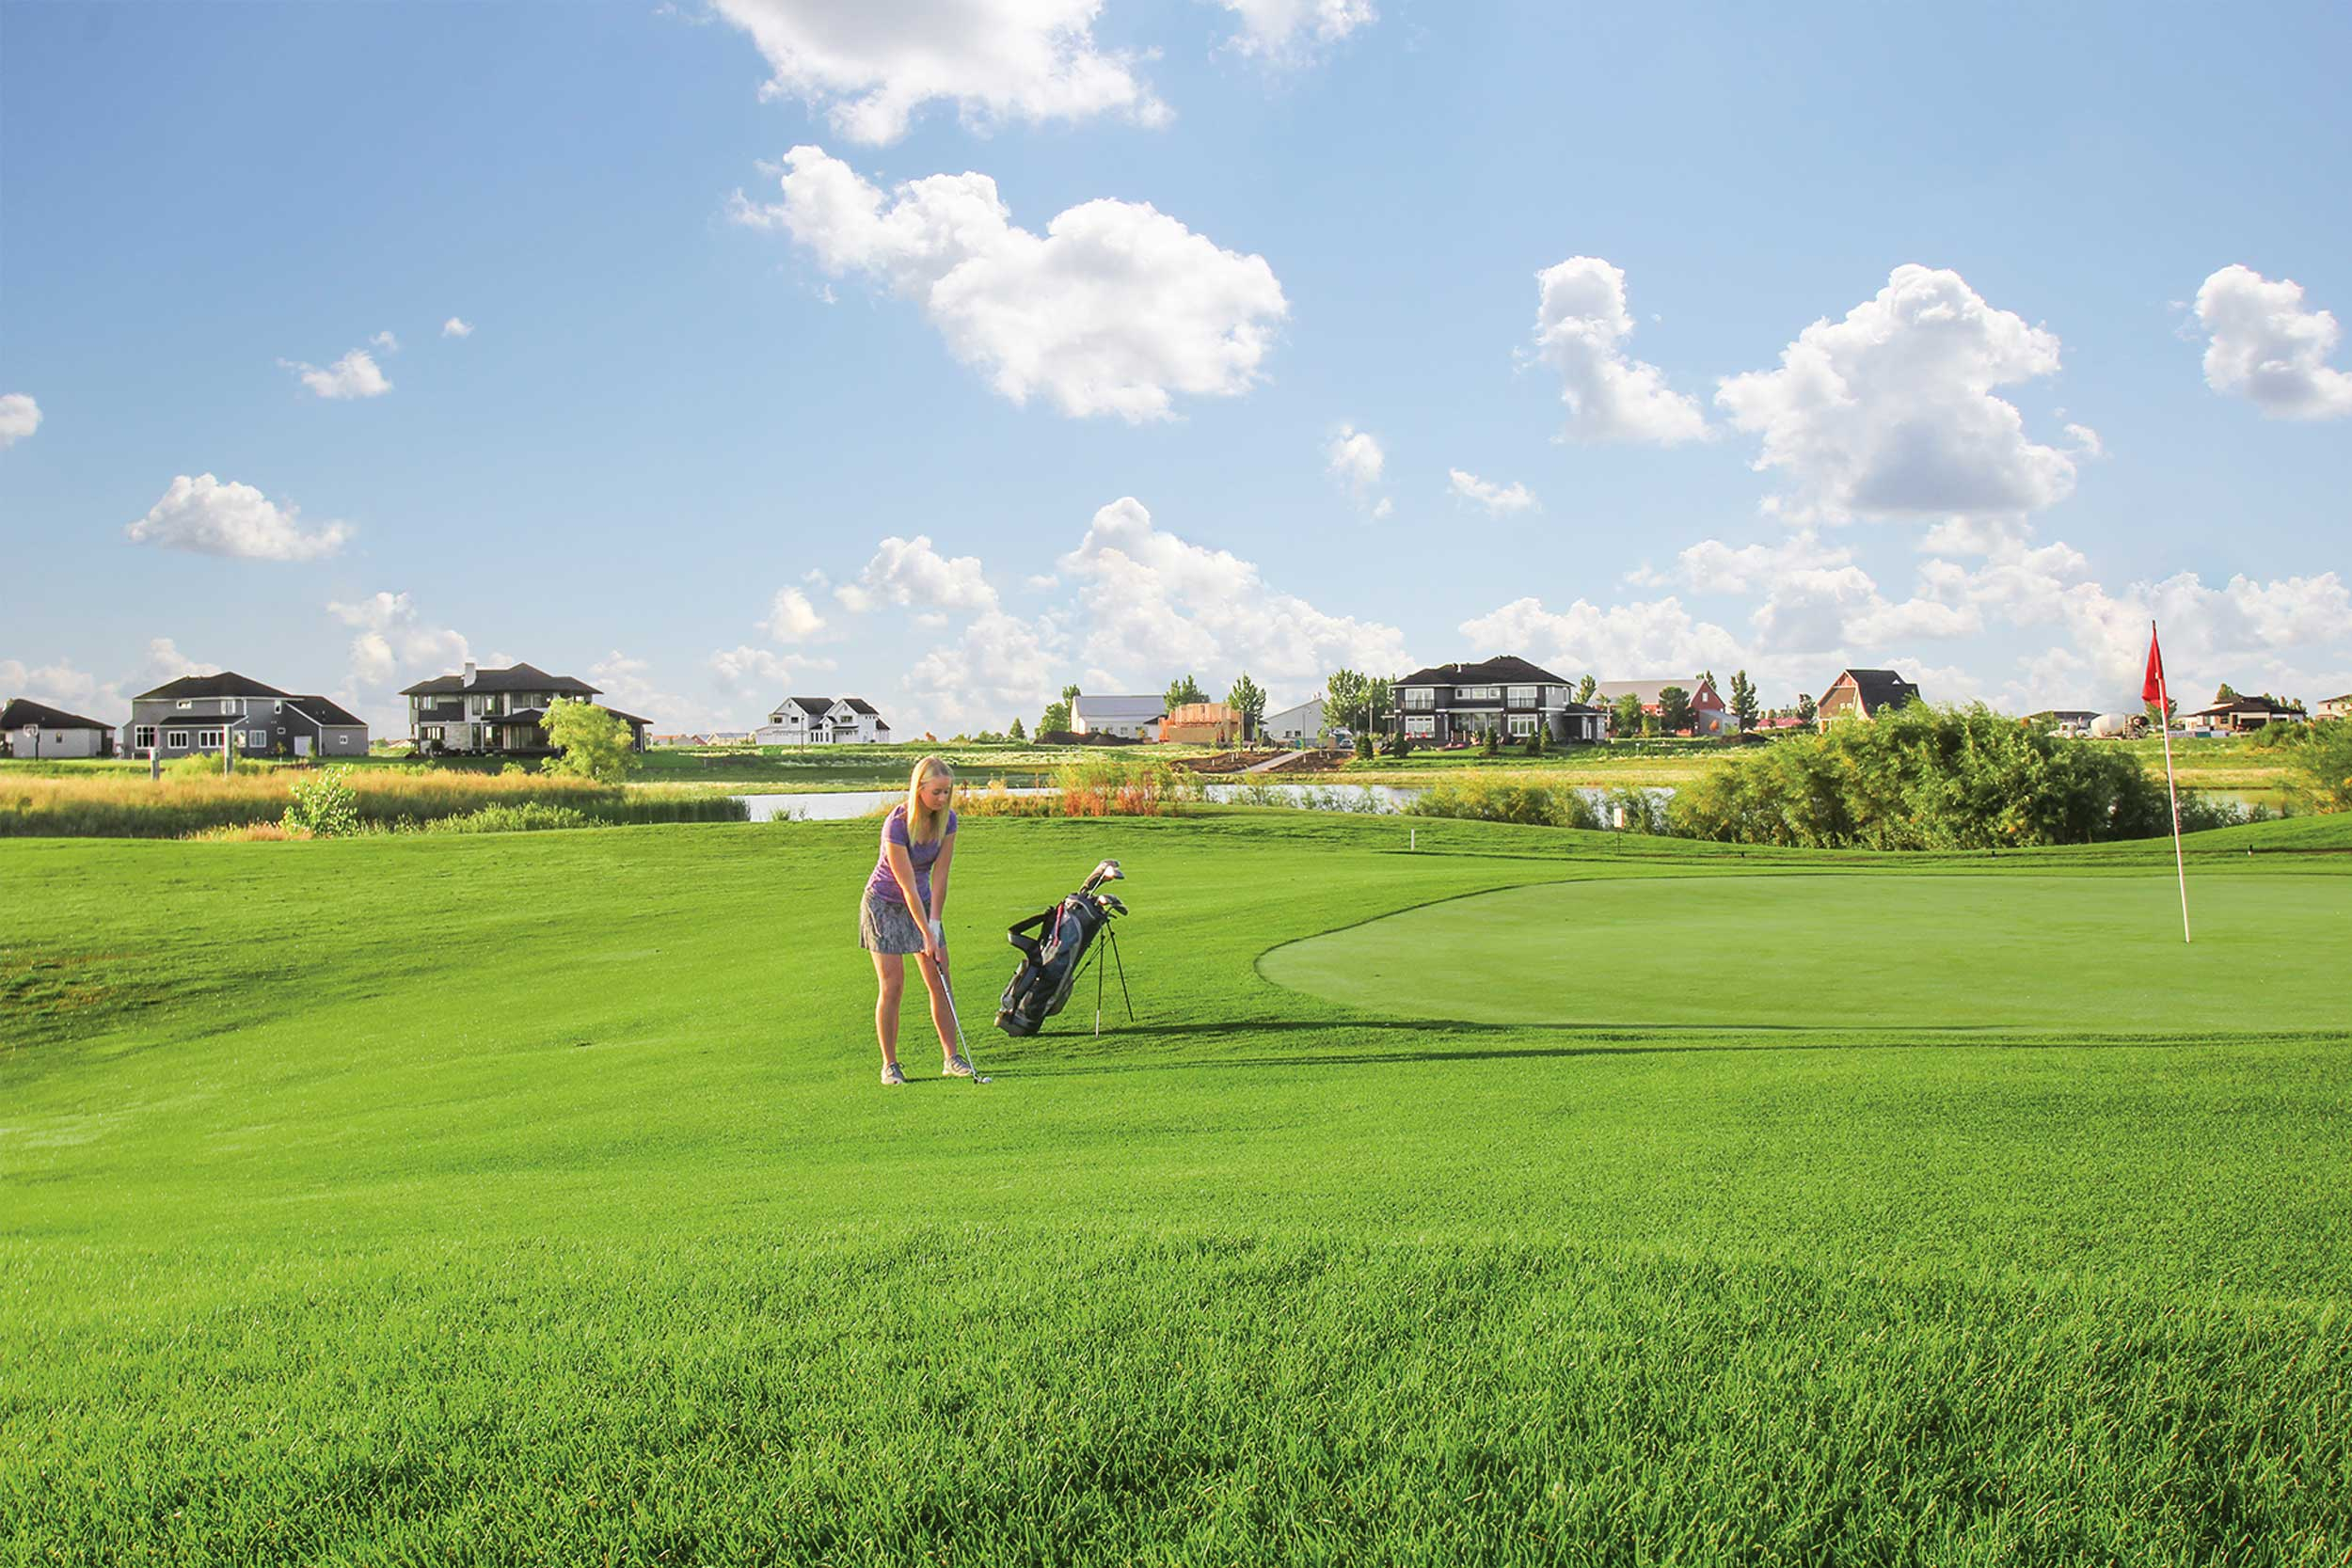 Recreation Nearby - Osgood Golf Course includes 9-holes, a separate 3-hole practice loop, as well as a bar & grill!